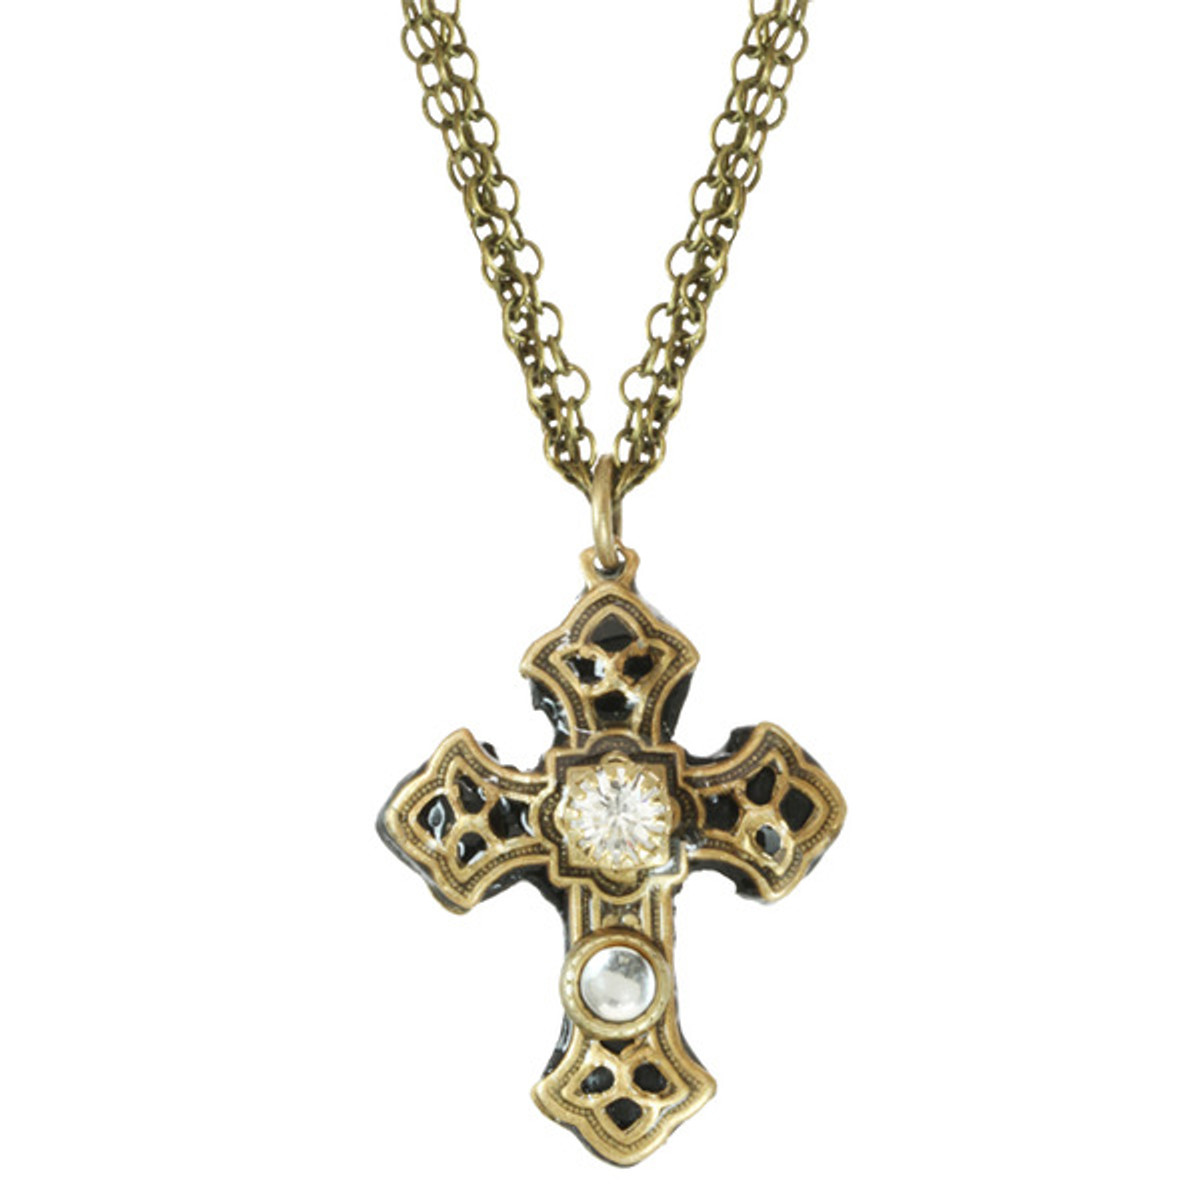 Michal Golan Cross With Crystal Centered Double Chain Necklace